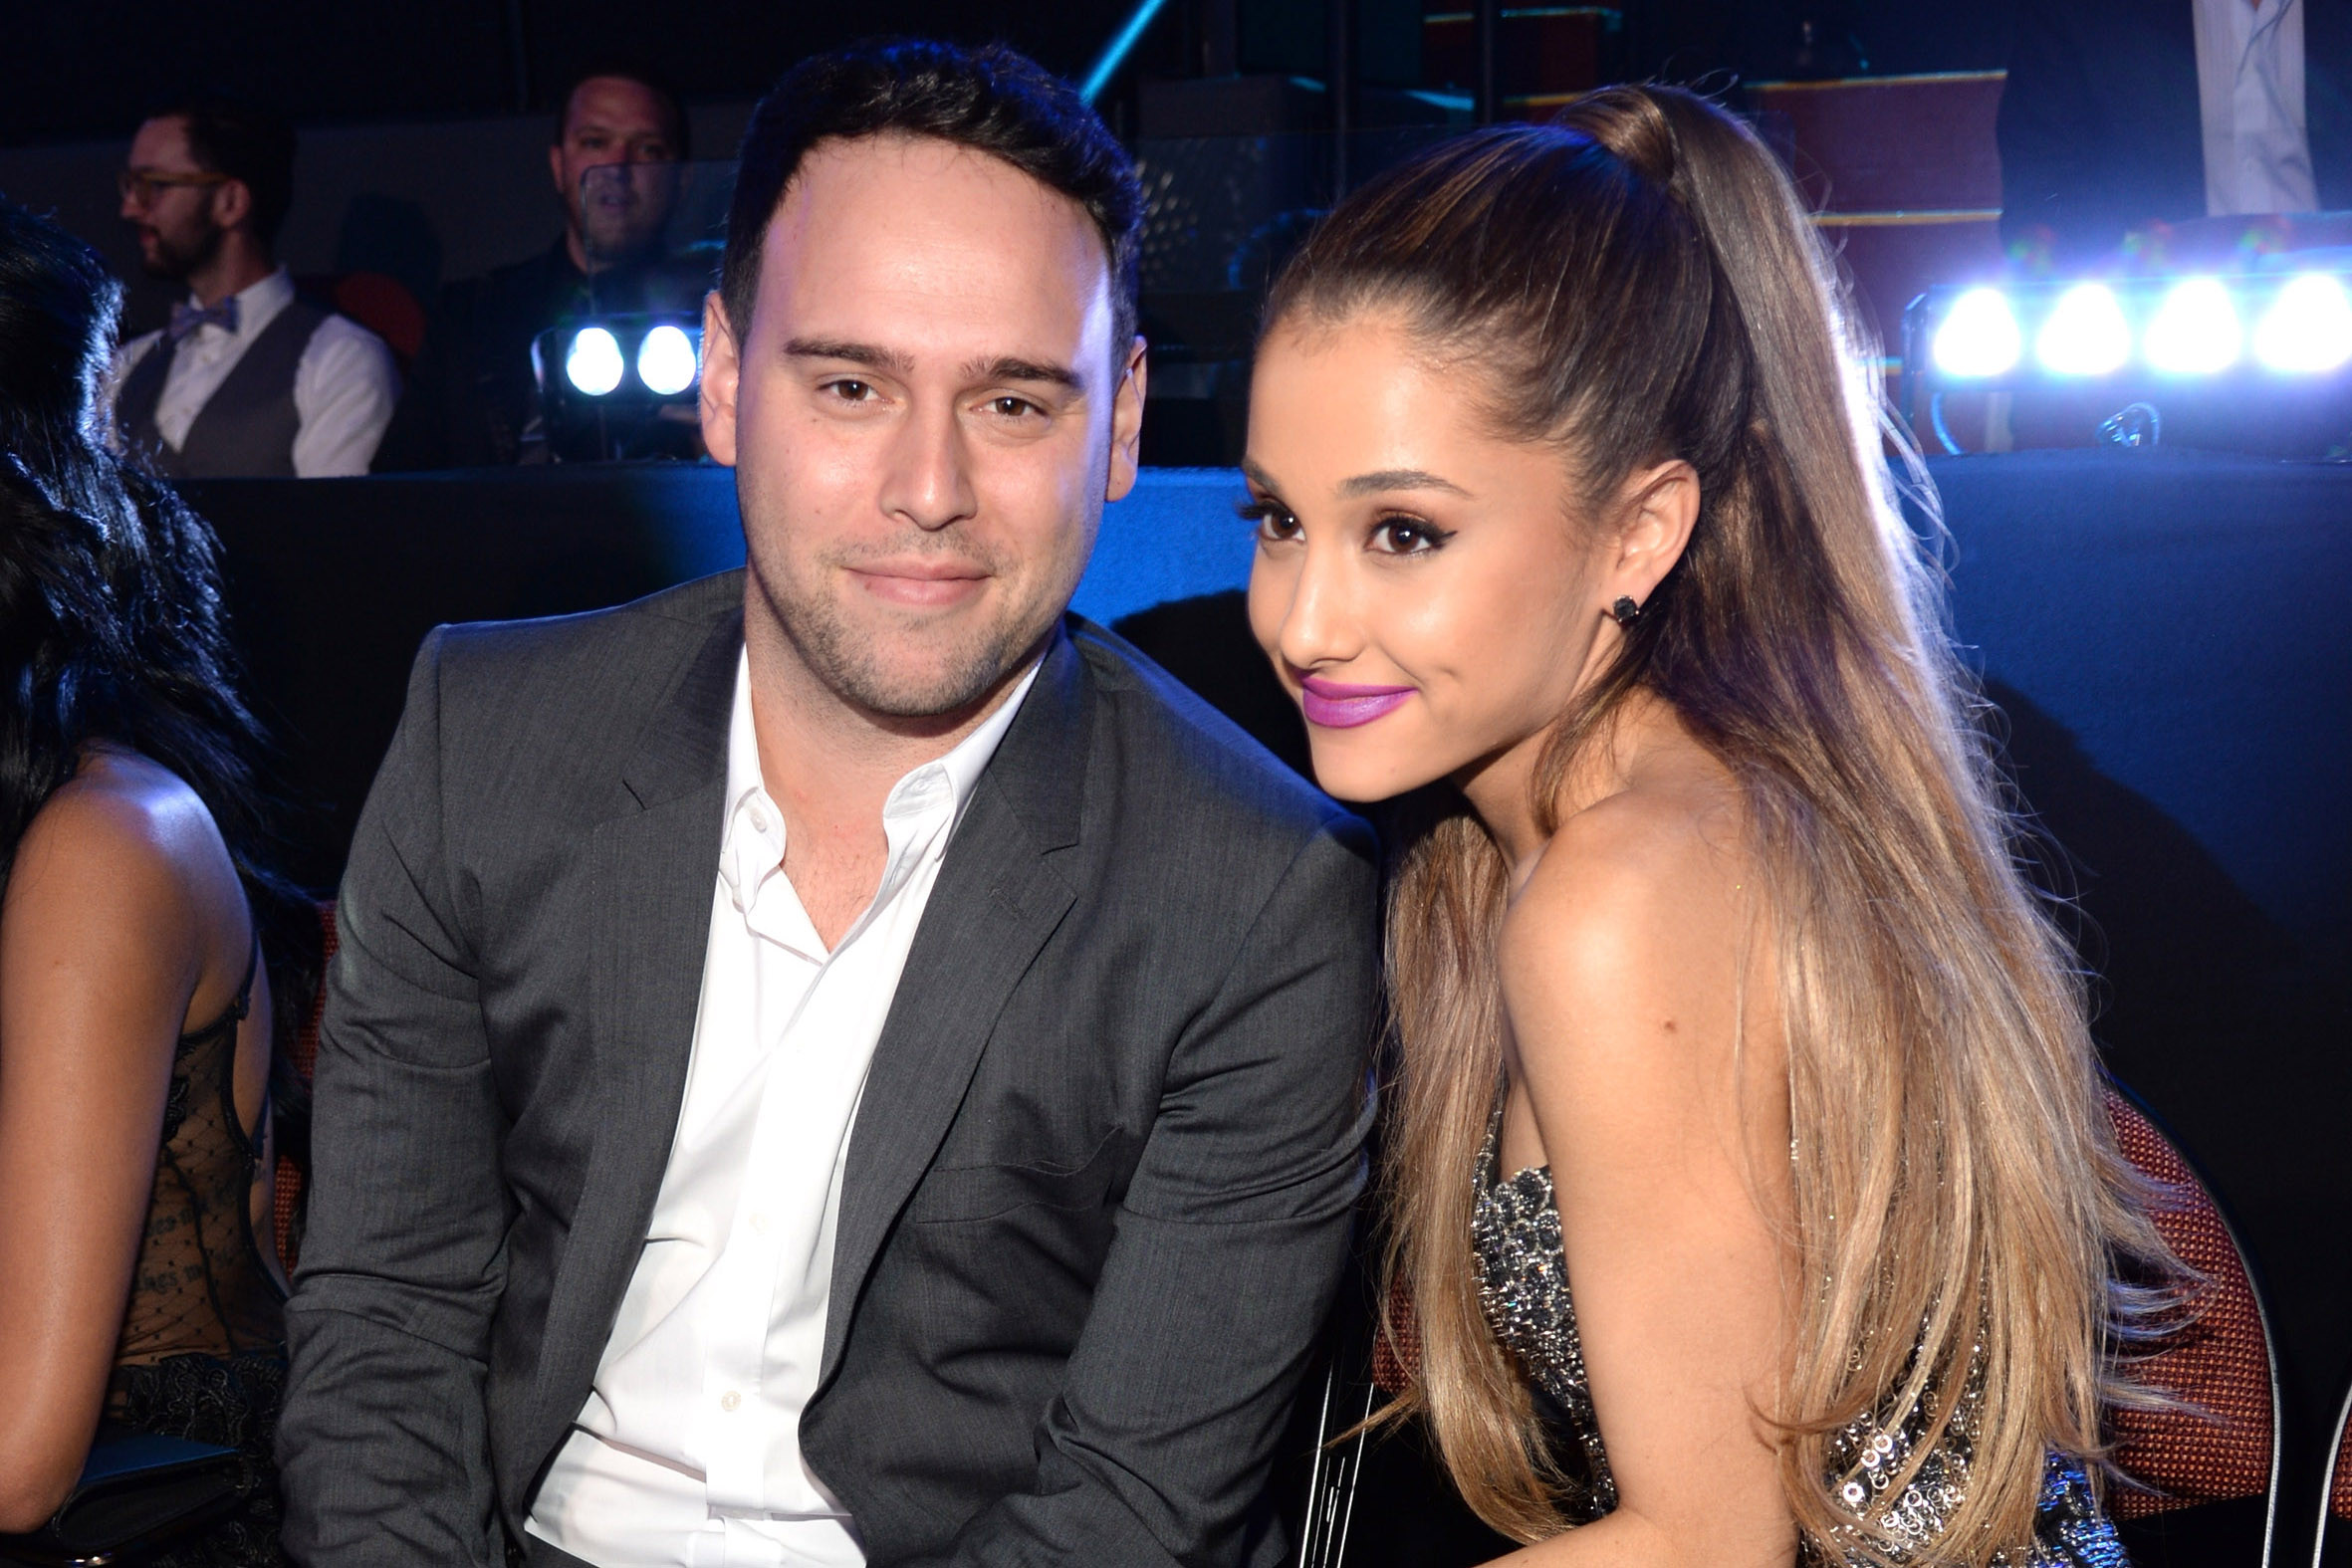 Scooter Braun and Ariana Grande attend the 2014 MTV Video Music Awards at The Forum on August 24, 2014 in Inglewood, California.